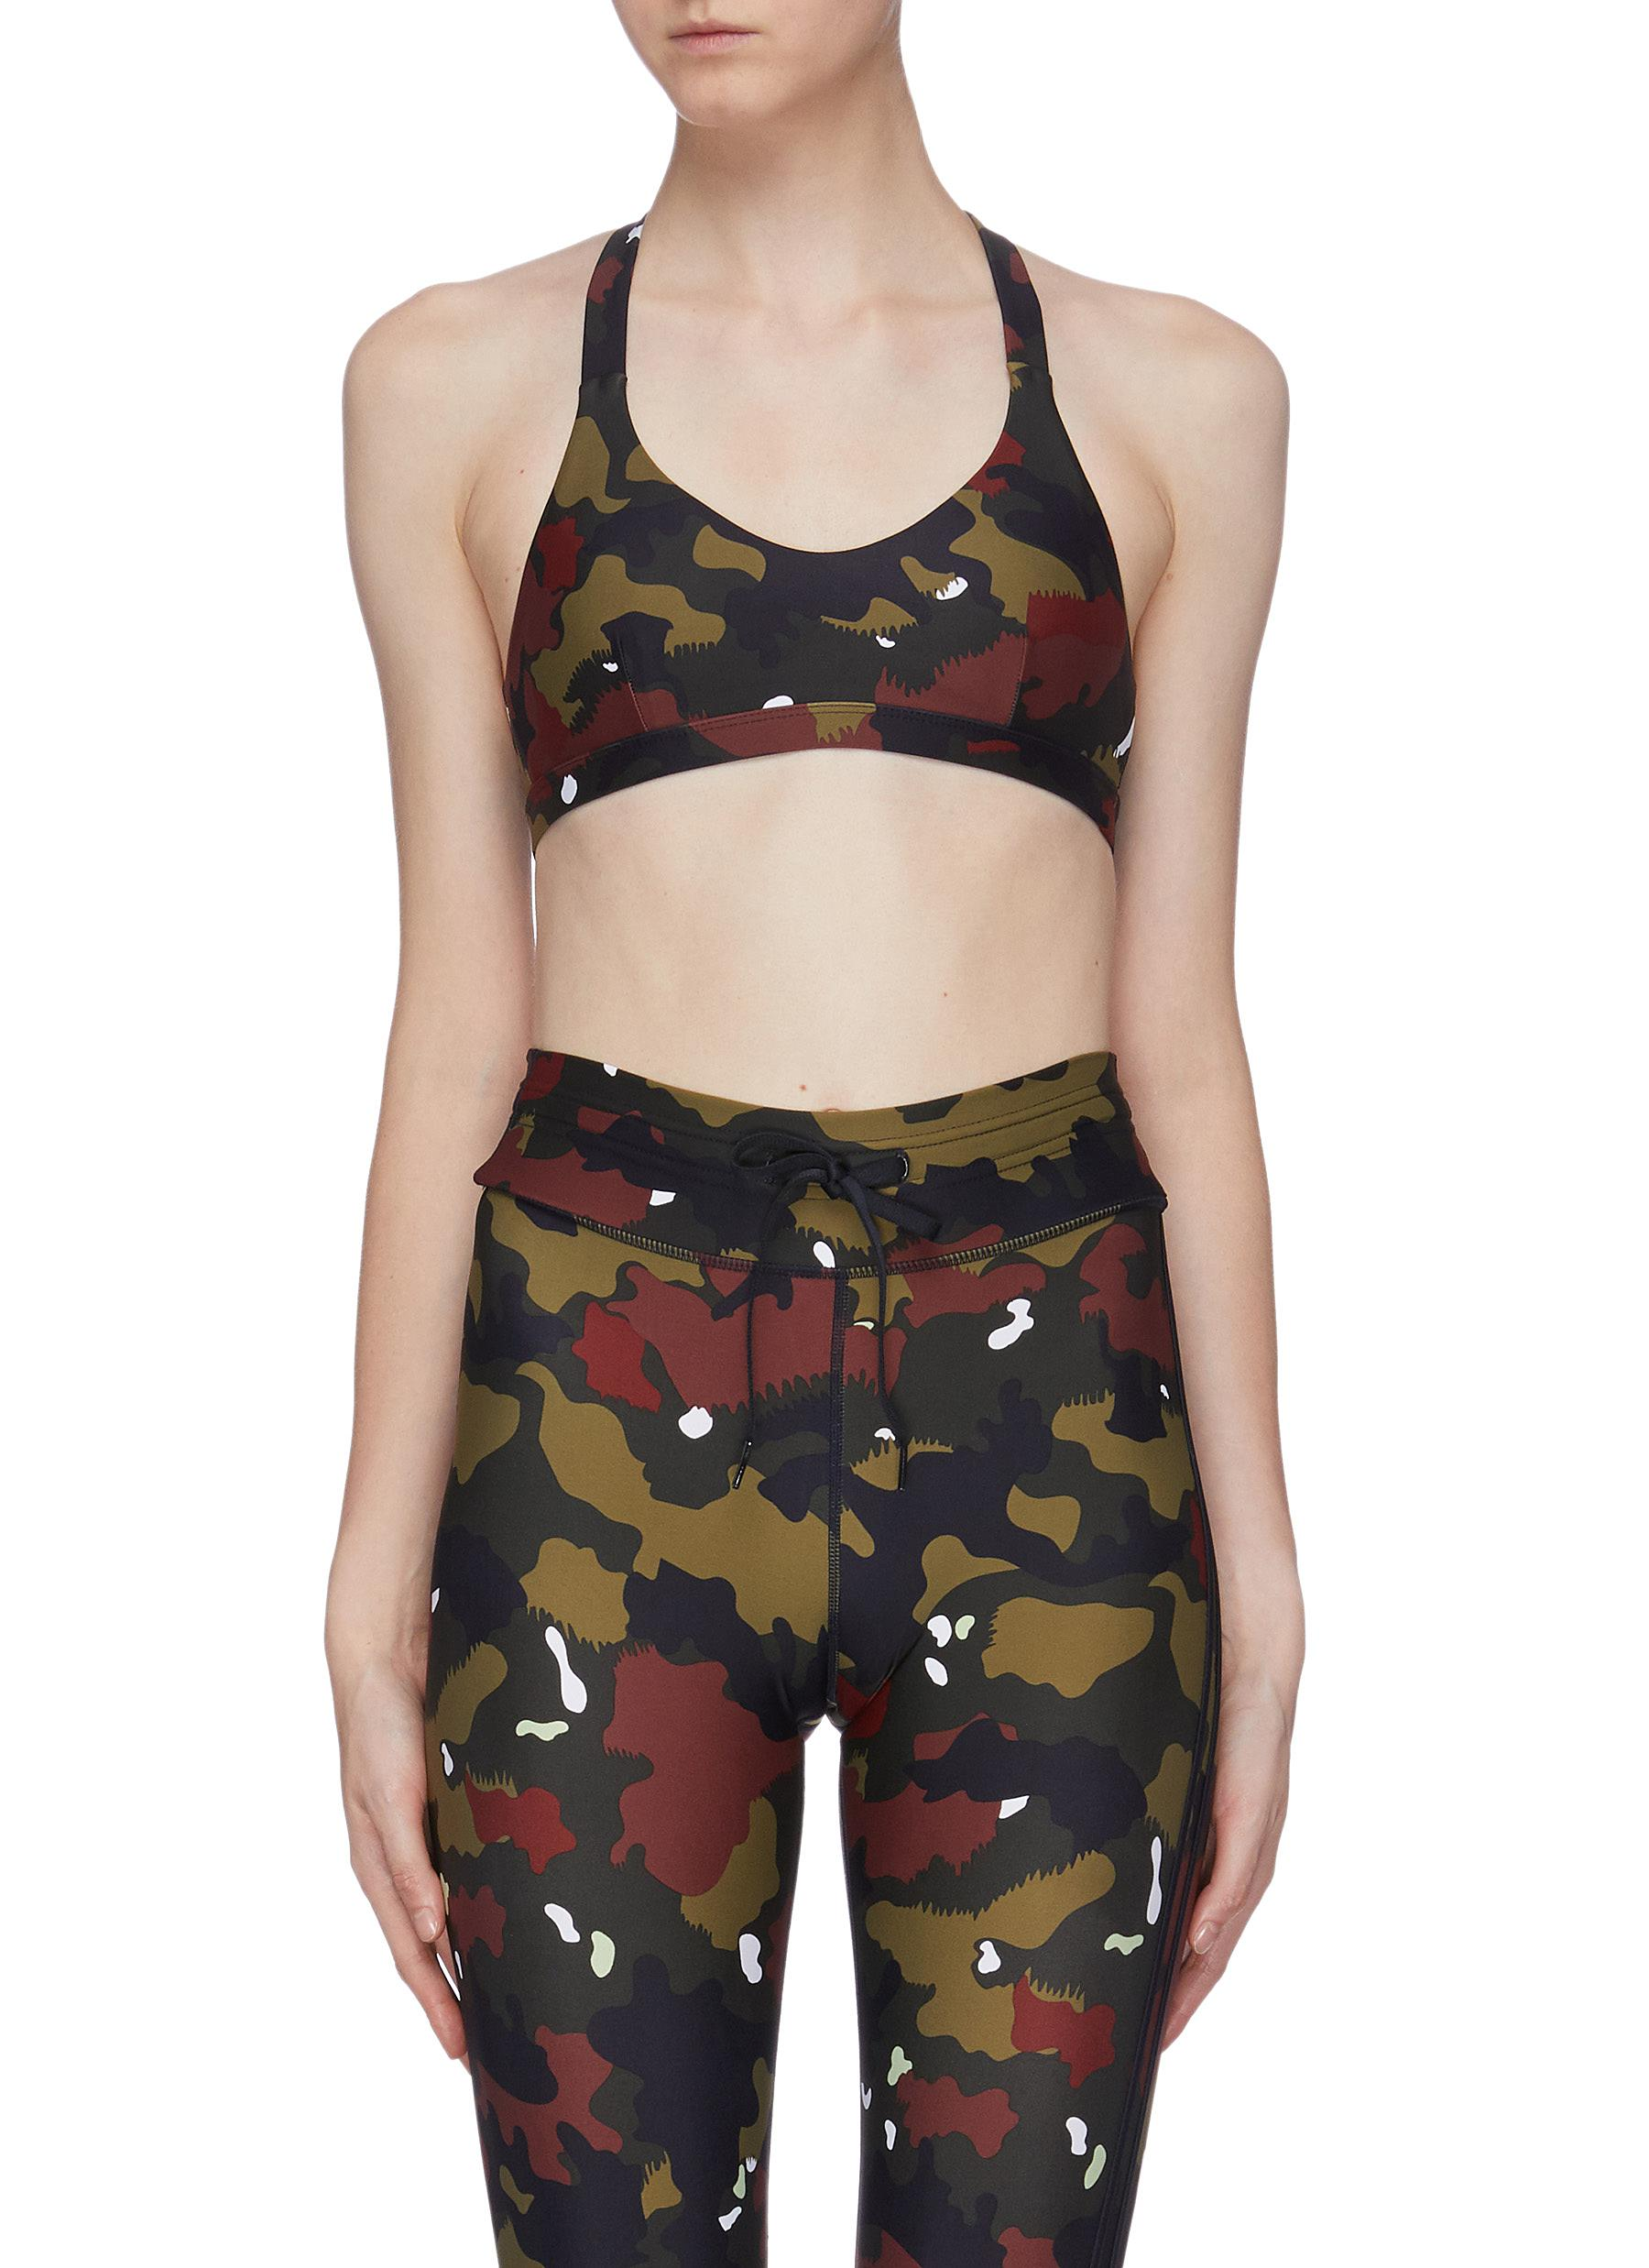 Jungle Sophie camoflage print sports bra by The Upside